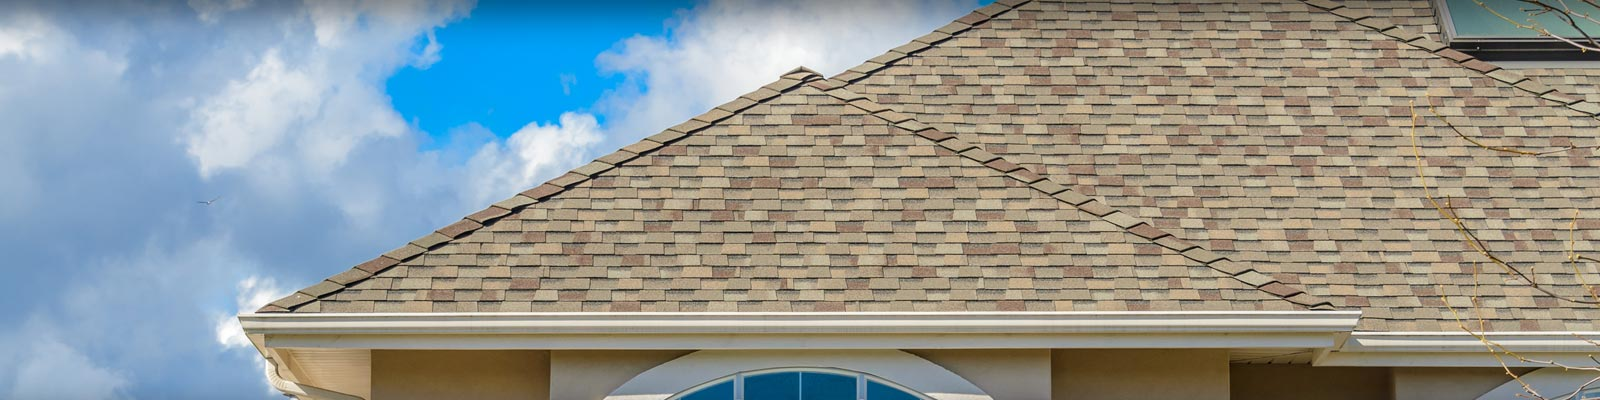 Best North Pierce County Wa Roof Cleaning